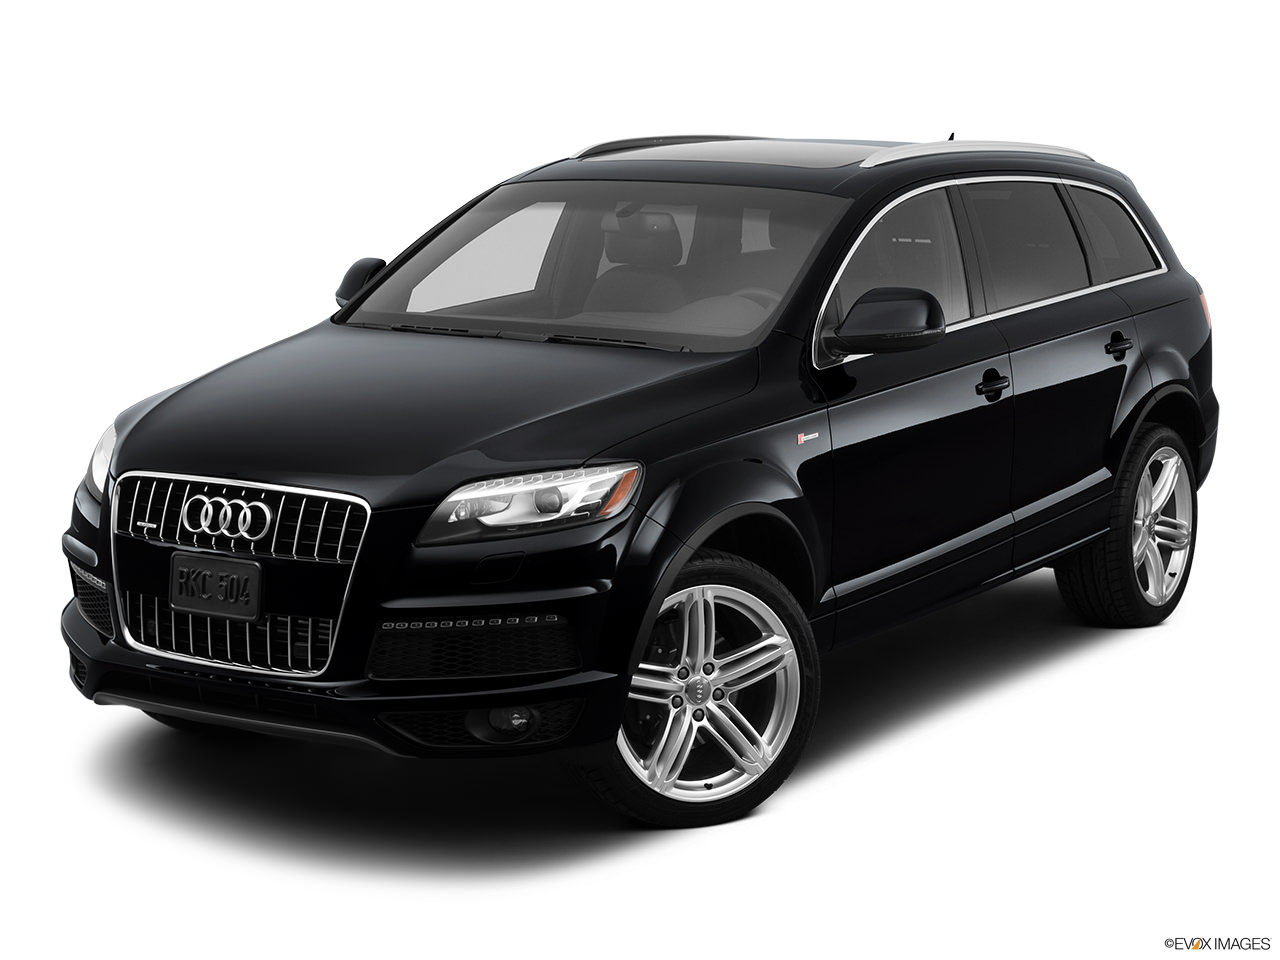 a buyer s guide to the 2012 audi q7 yourmechanic advice rh yourmechanic com Audi Q5 Cargo Area Audi A6 Cargo Cover